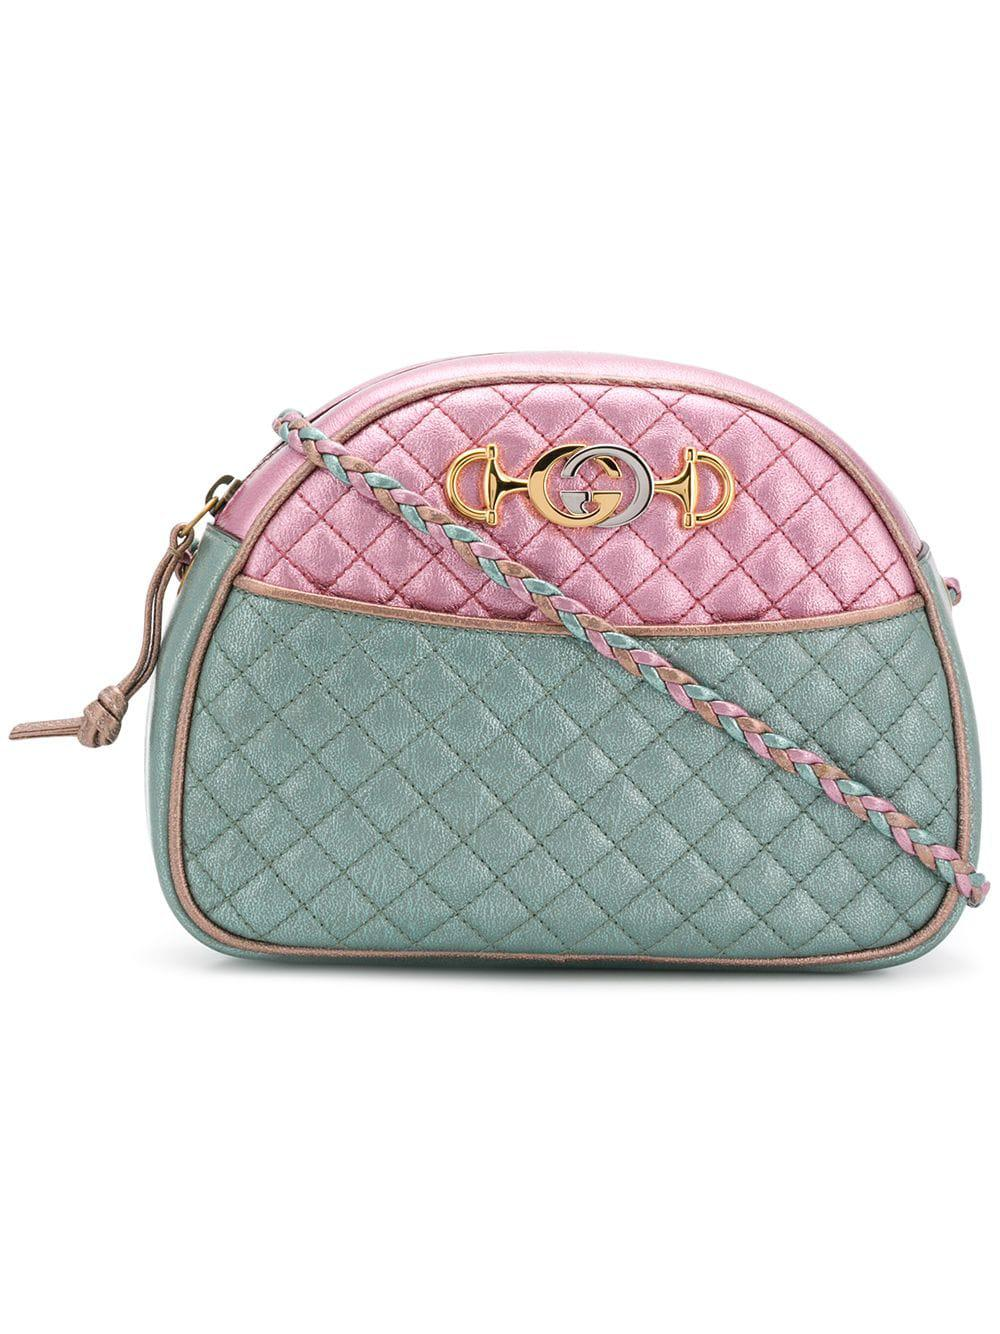 7a7bac6dd Gucci Trapuntata Mini Quilted Metallic Leather Crossbody Bag In Pink ...